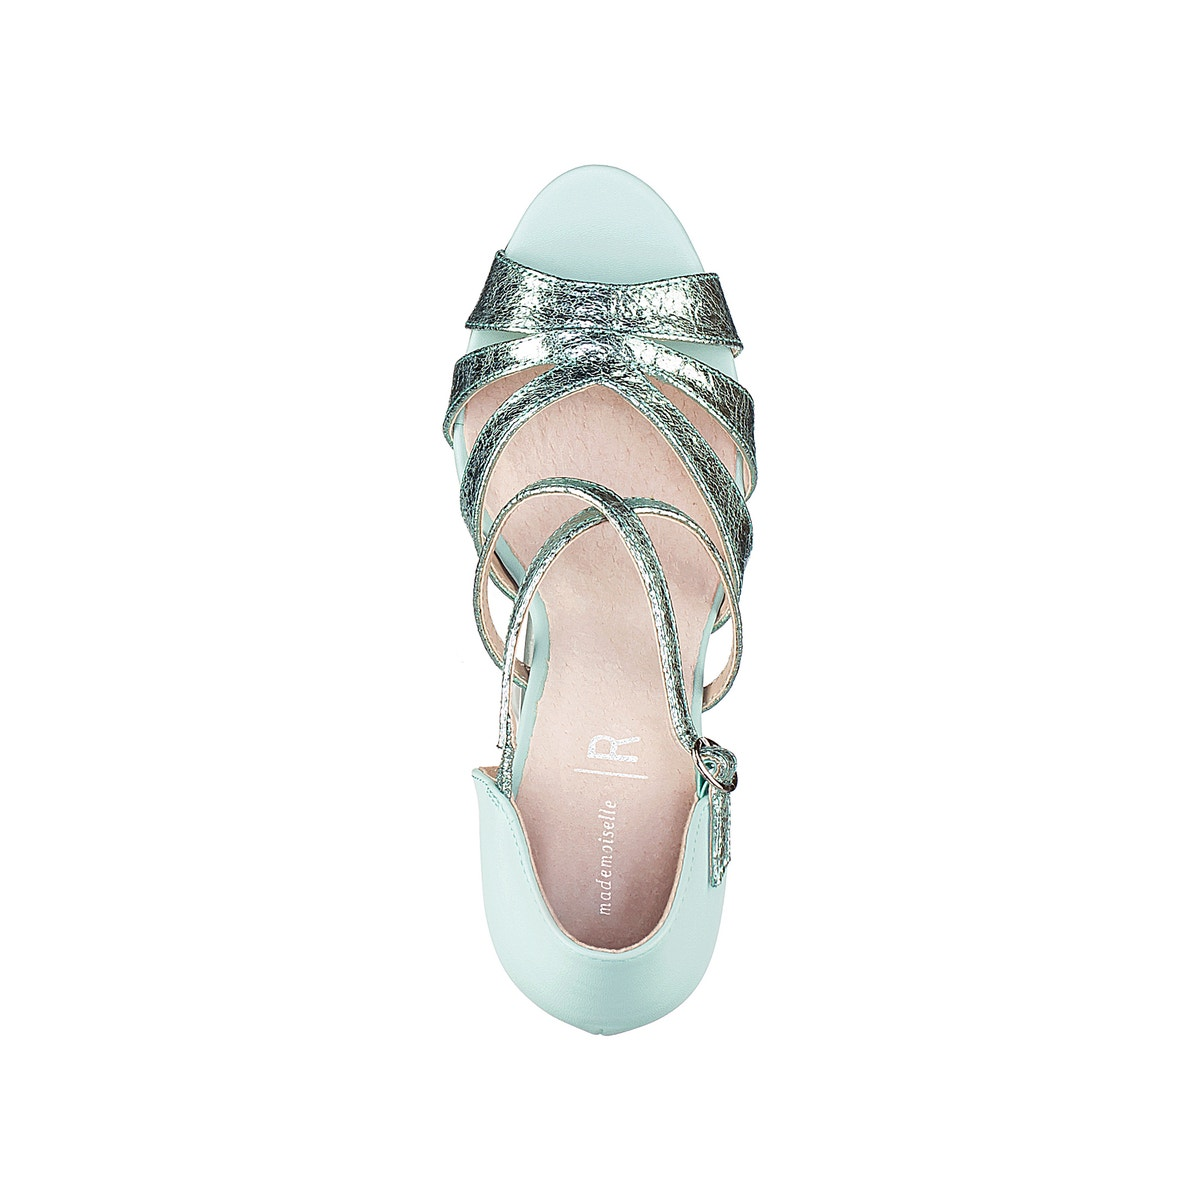 La Redoute Sandals Donna Metallic Sandals Redoute 77ed50